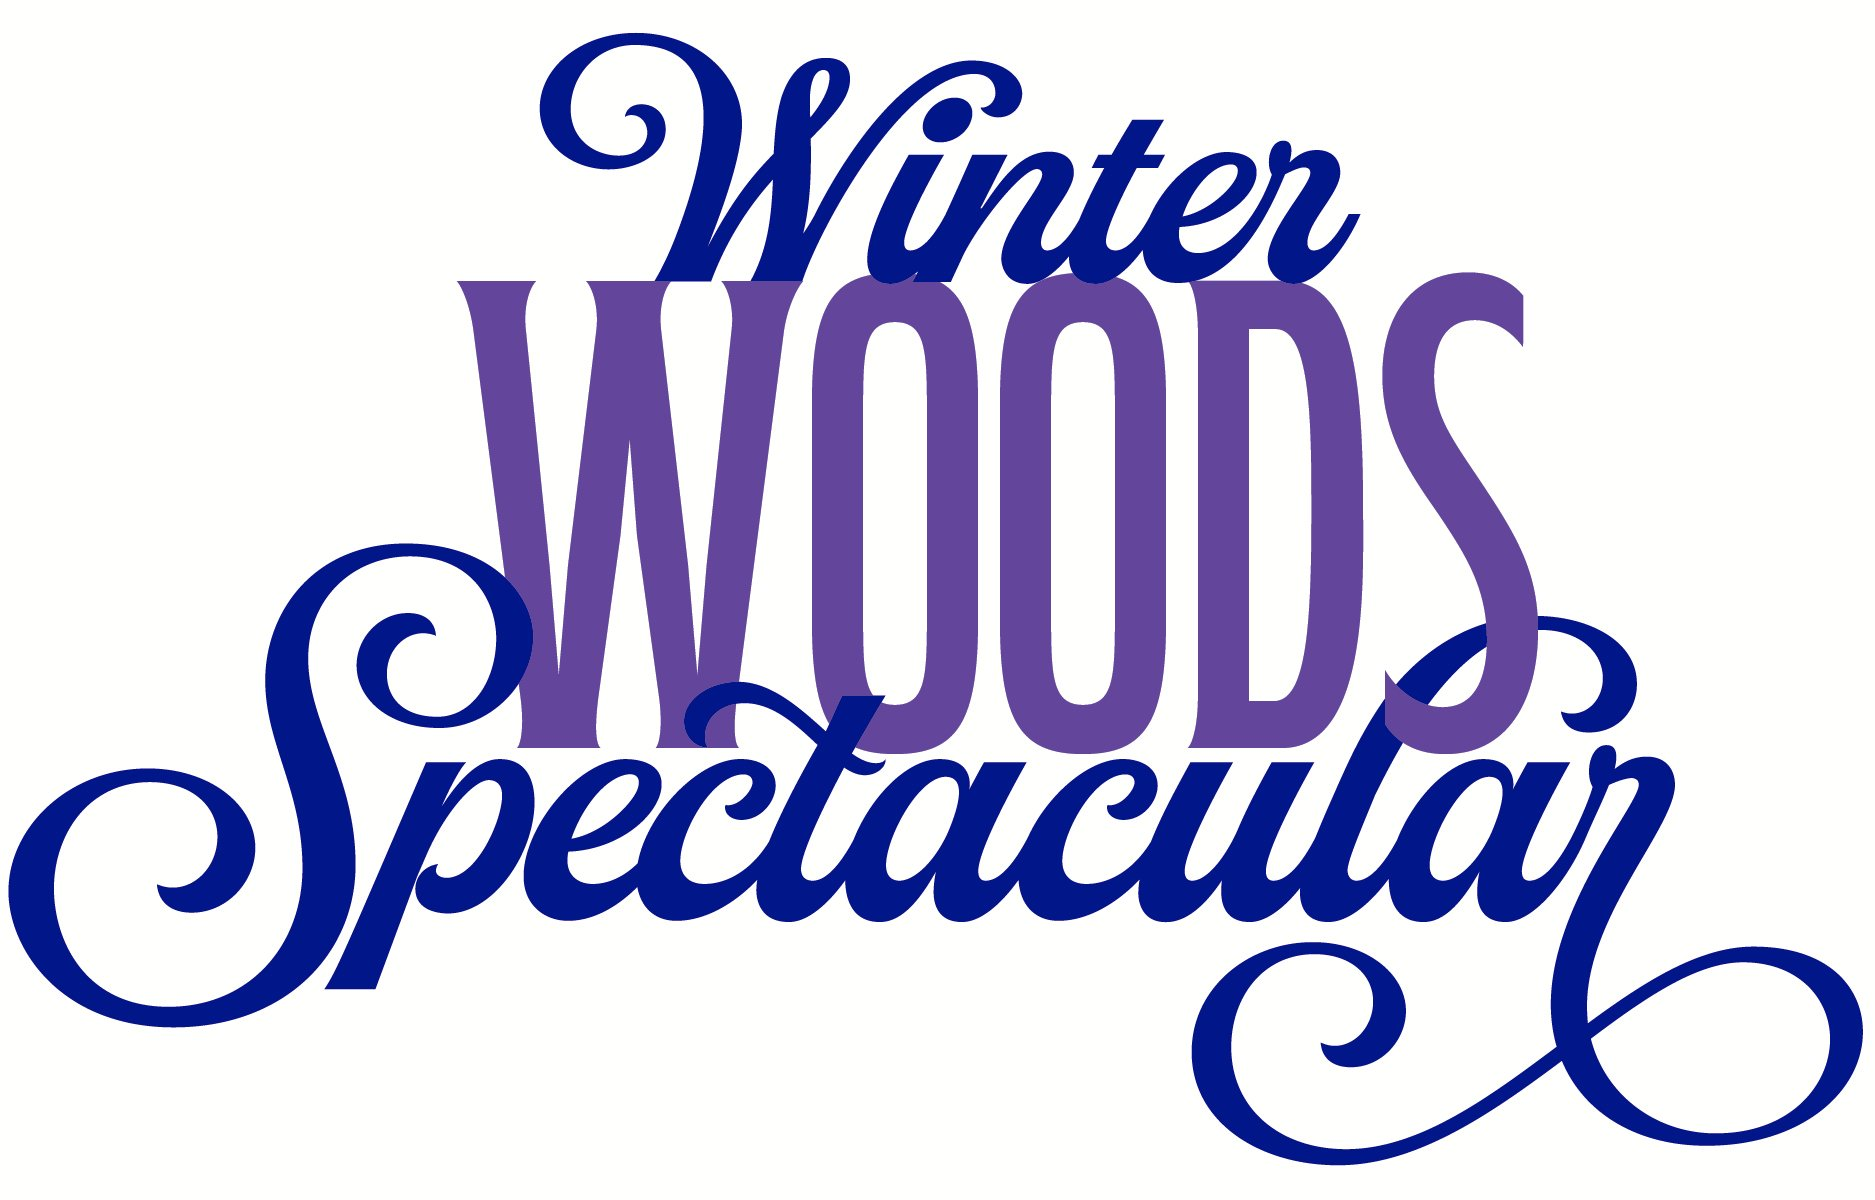 Winter Woods Spectacular